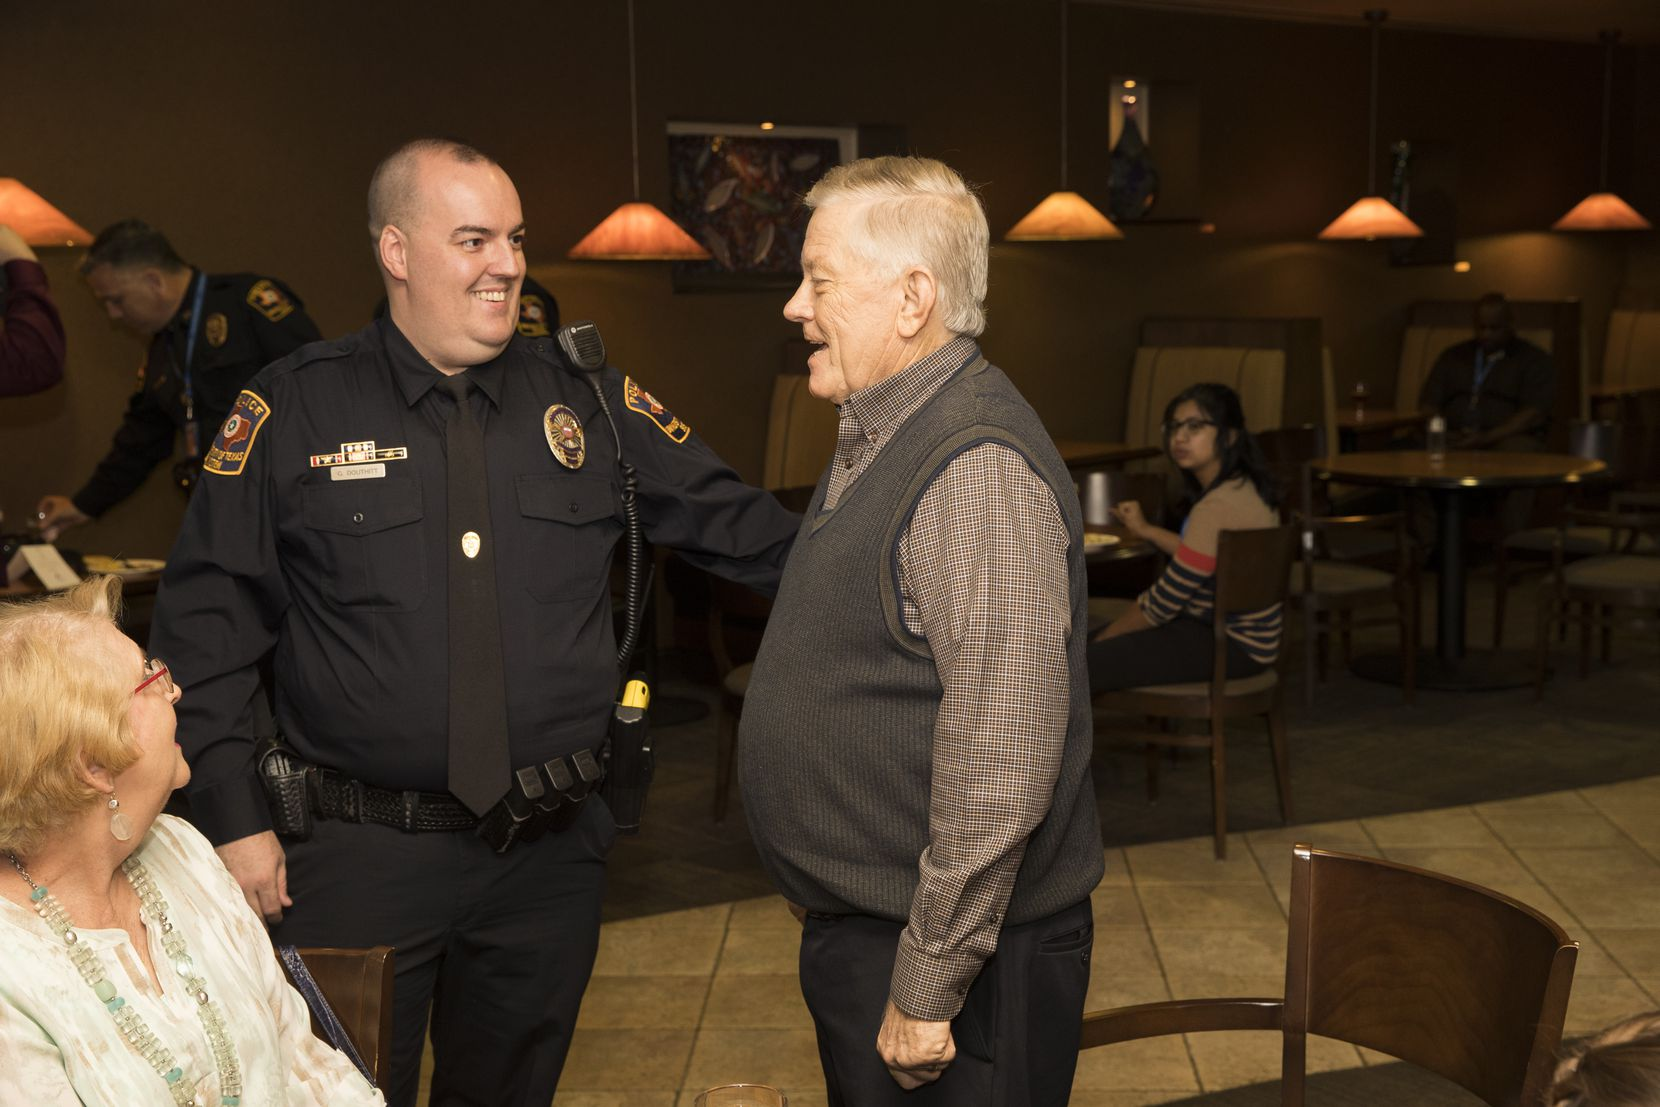 UTA police Officer Garry Douthitt chats with James Gamble during a ceremony at the University of Texas at Arlington recognizing Douthitt and others for helping save Gamble's life after he had a heart attack on campus.